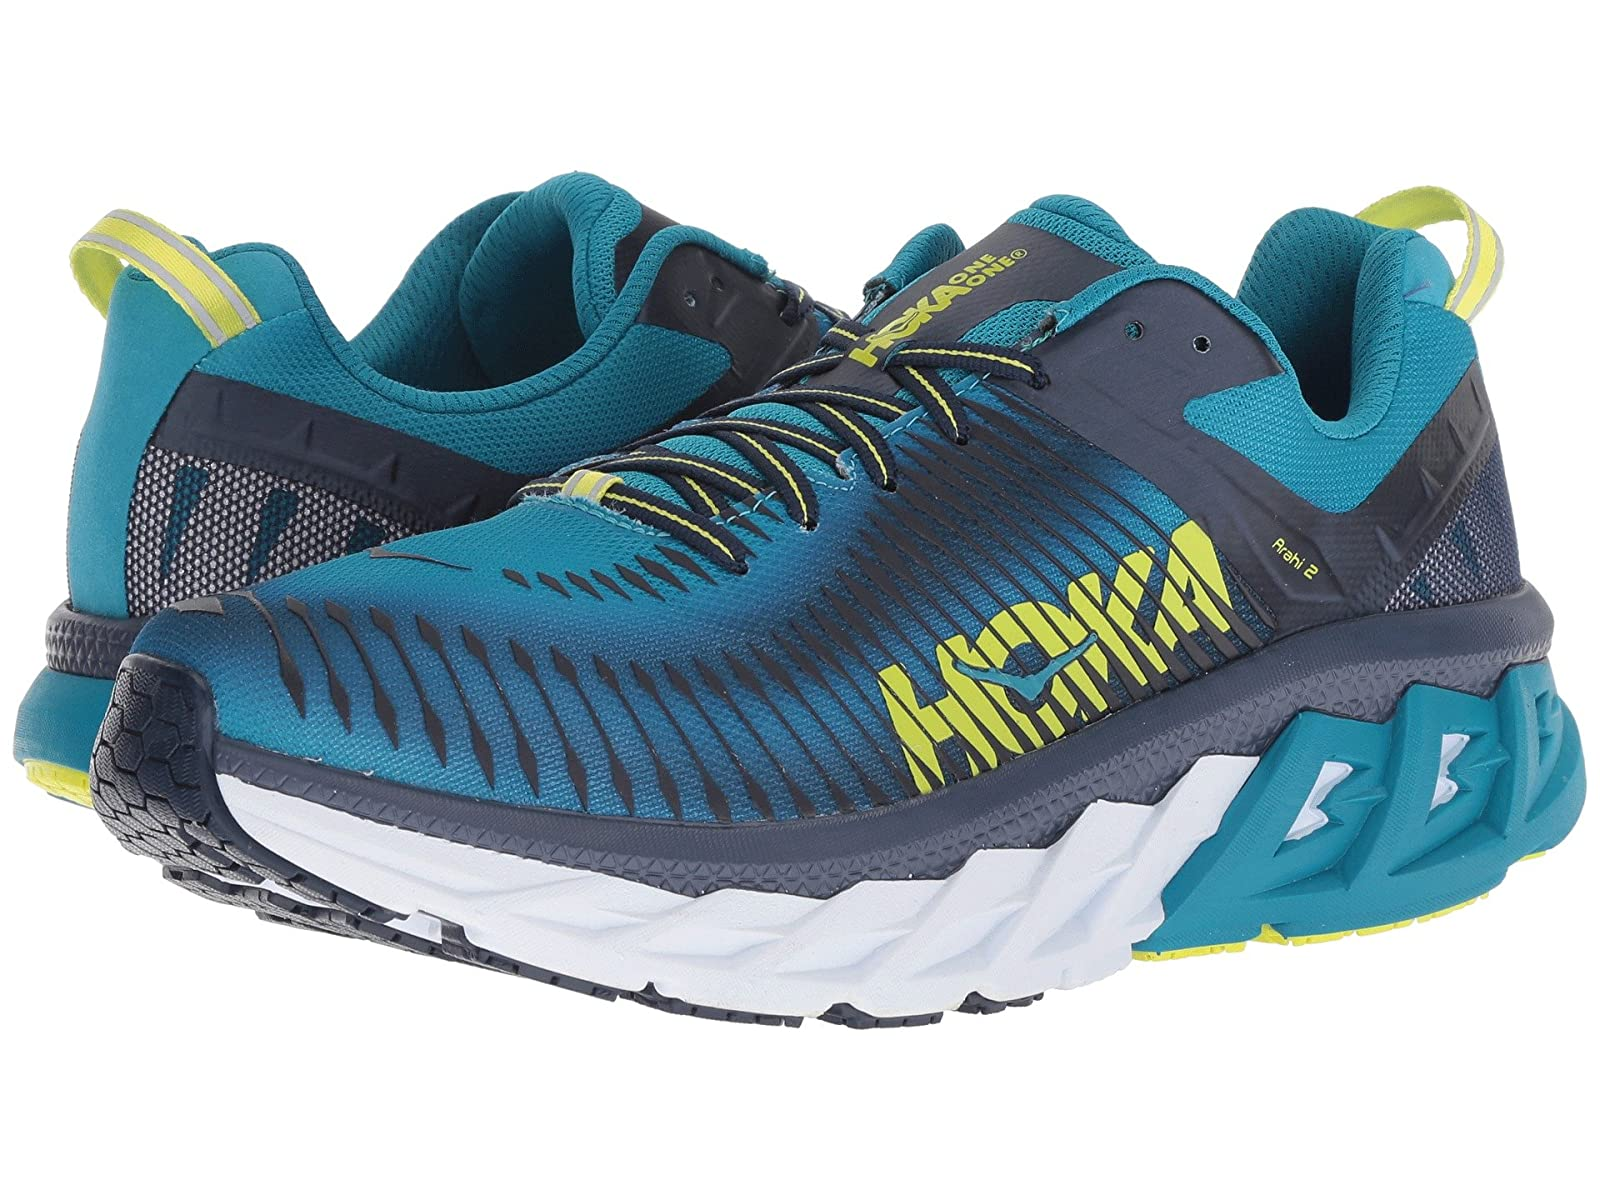 Hoka One One Arahi 2Atmospheric grades have affordable shoes